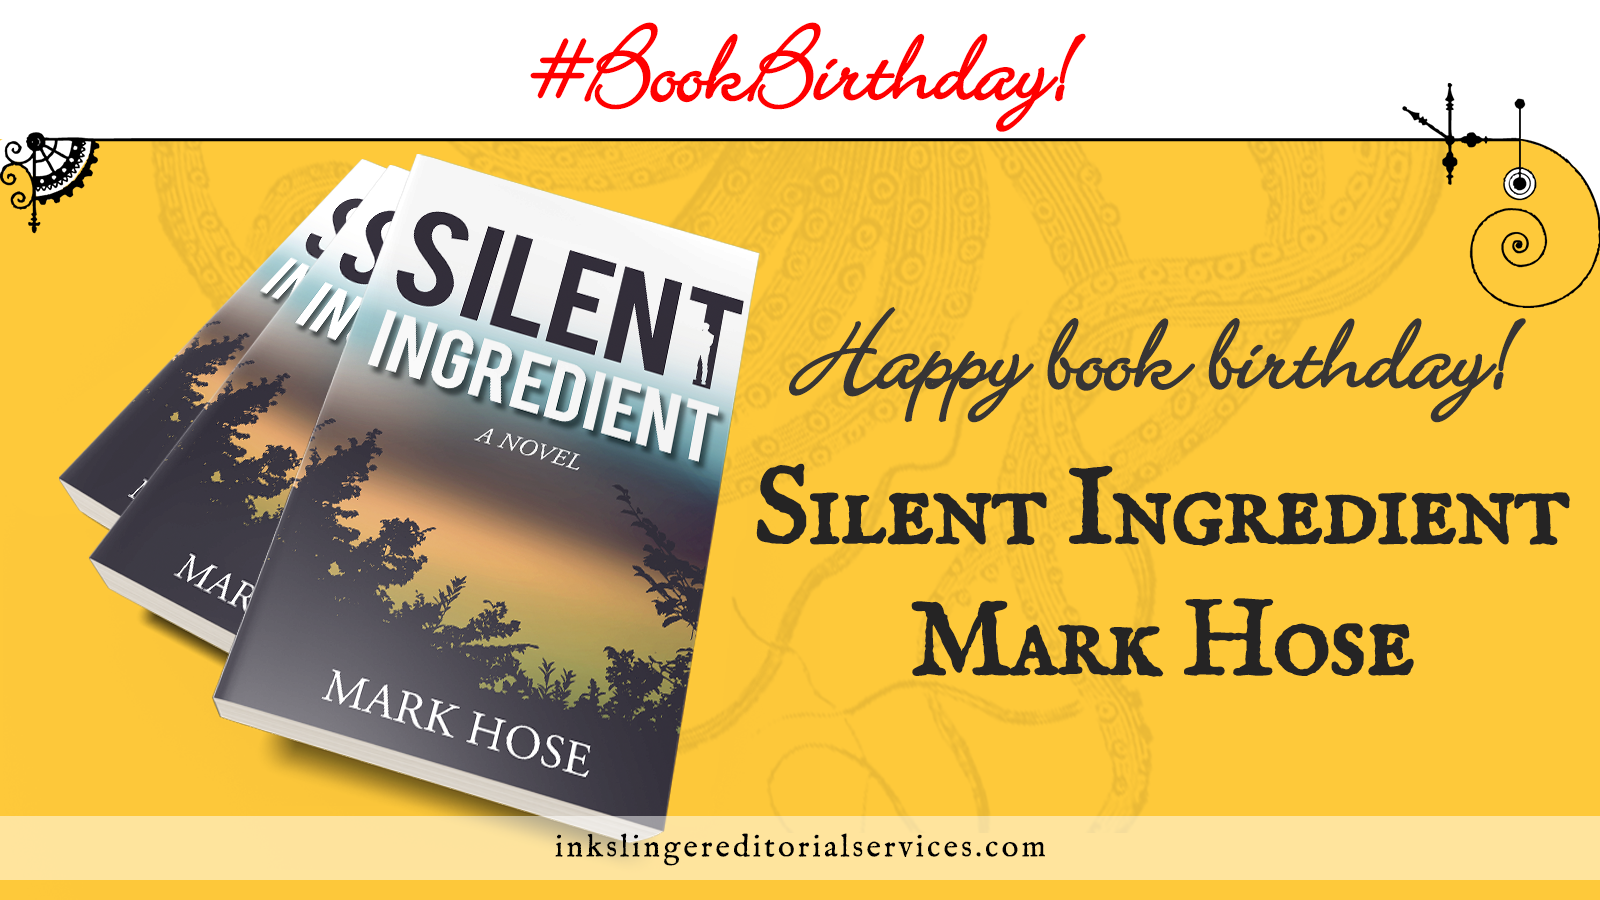 Three stacked Silent Ingredient books by Mark Hose on a yellow field with faint tentacles in the background with the hashtag Book Birthday!